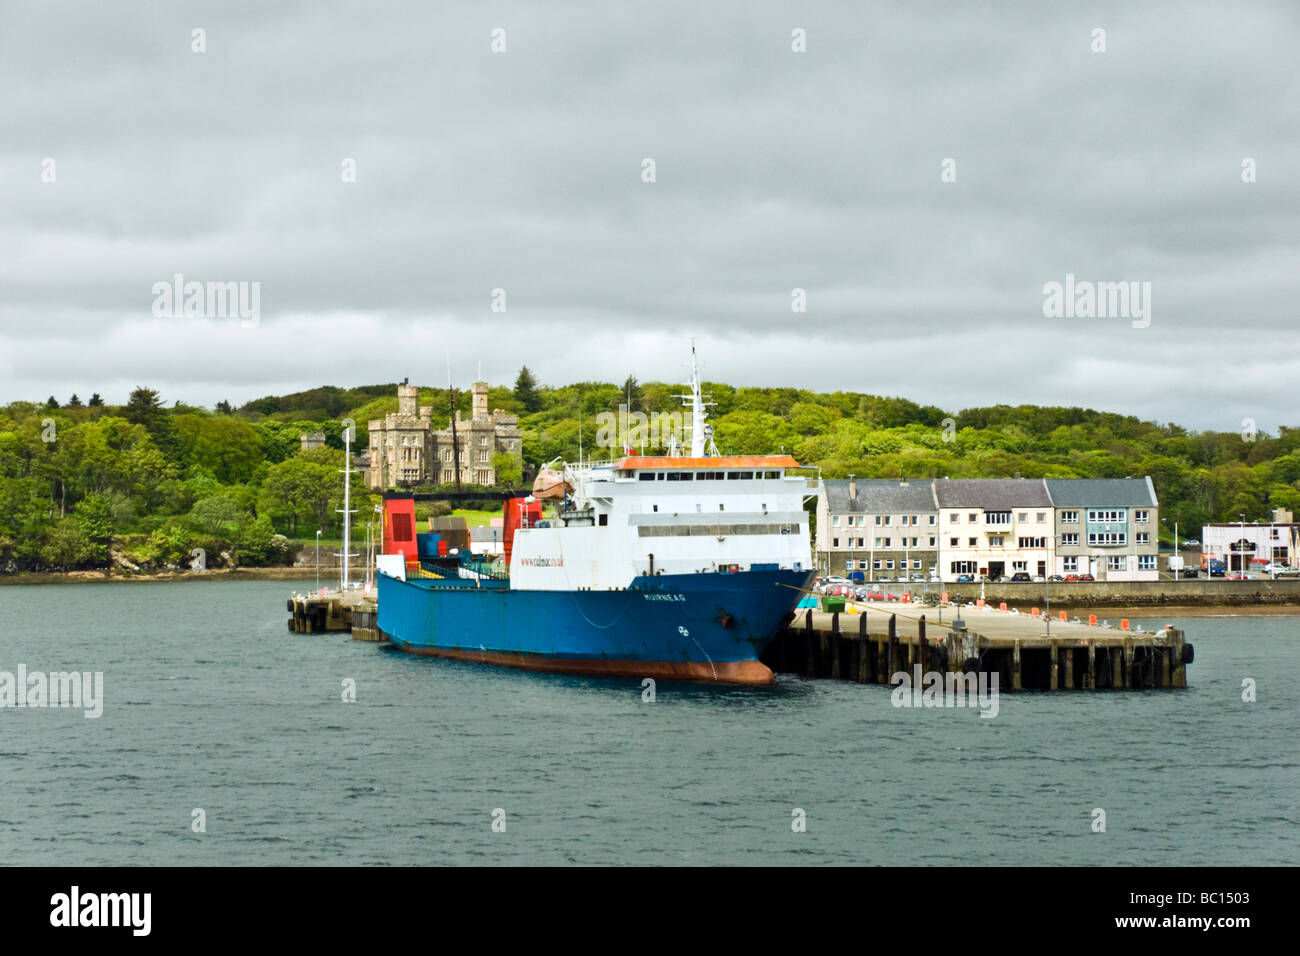 Stornoway Harbour Stornoway on the Isle of Lewis Outer Hebrides Scotland with berthed Calmac RoRo ferry Muirneag - Stock Image